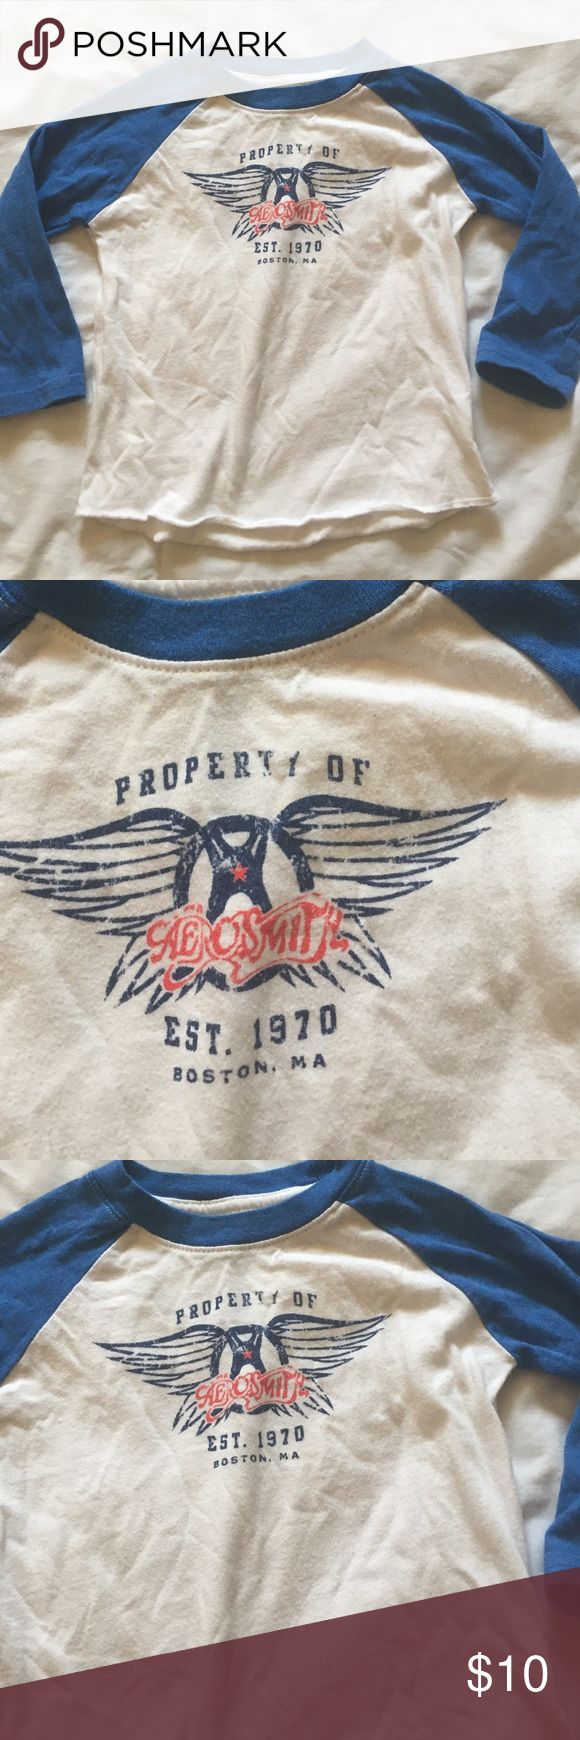 Aerosmith baseball tee / raglan / band tee Aerosmith Tee / great condition // FALL SALE Aerosmith Shirts & Tops Tees - Long Sleeve